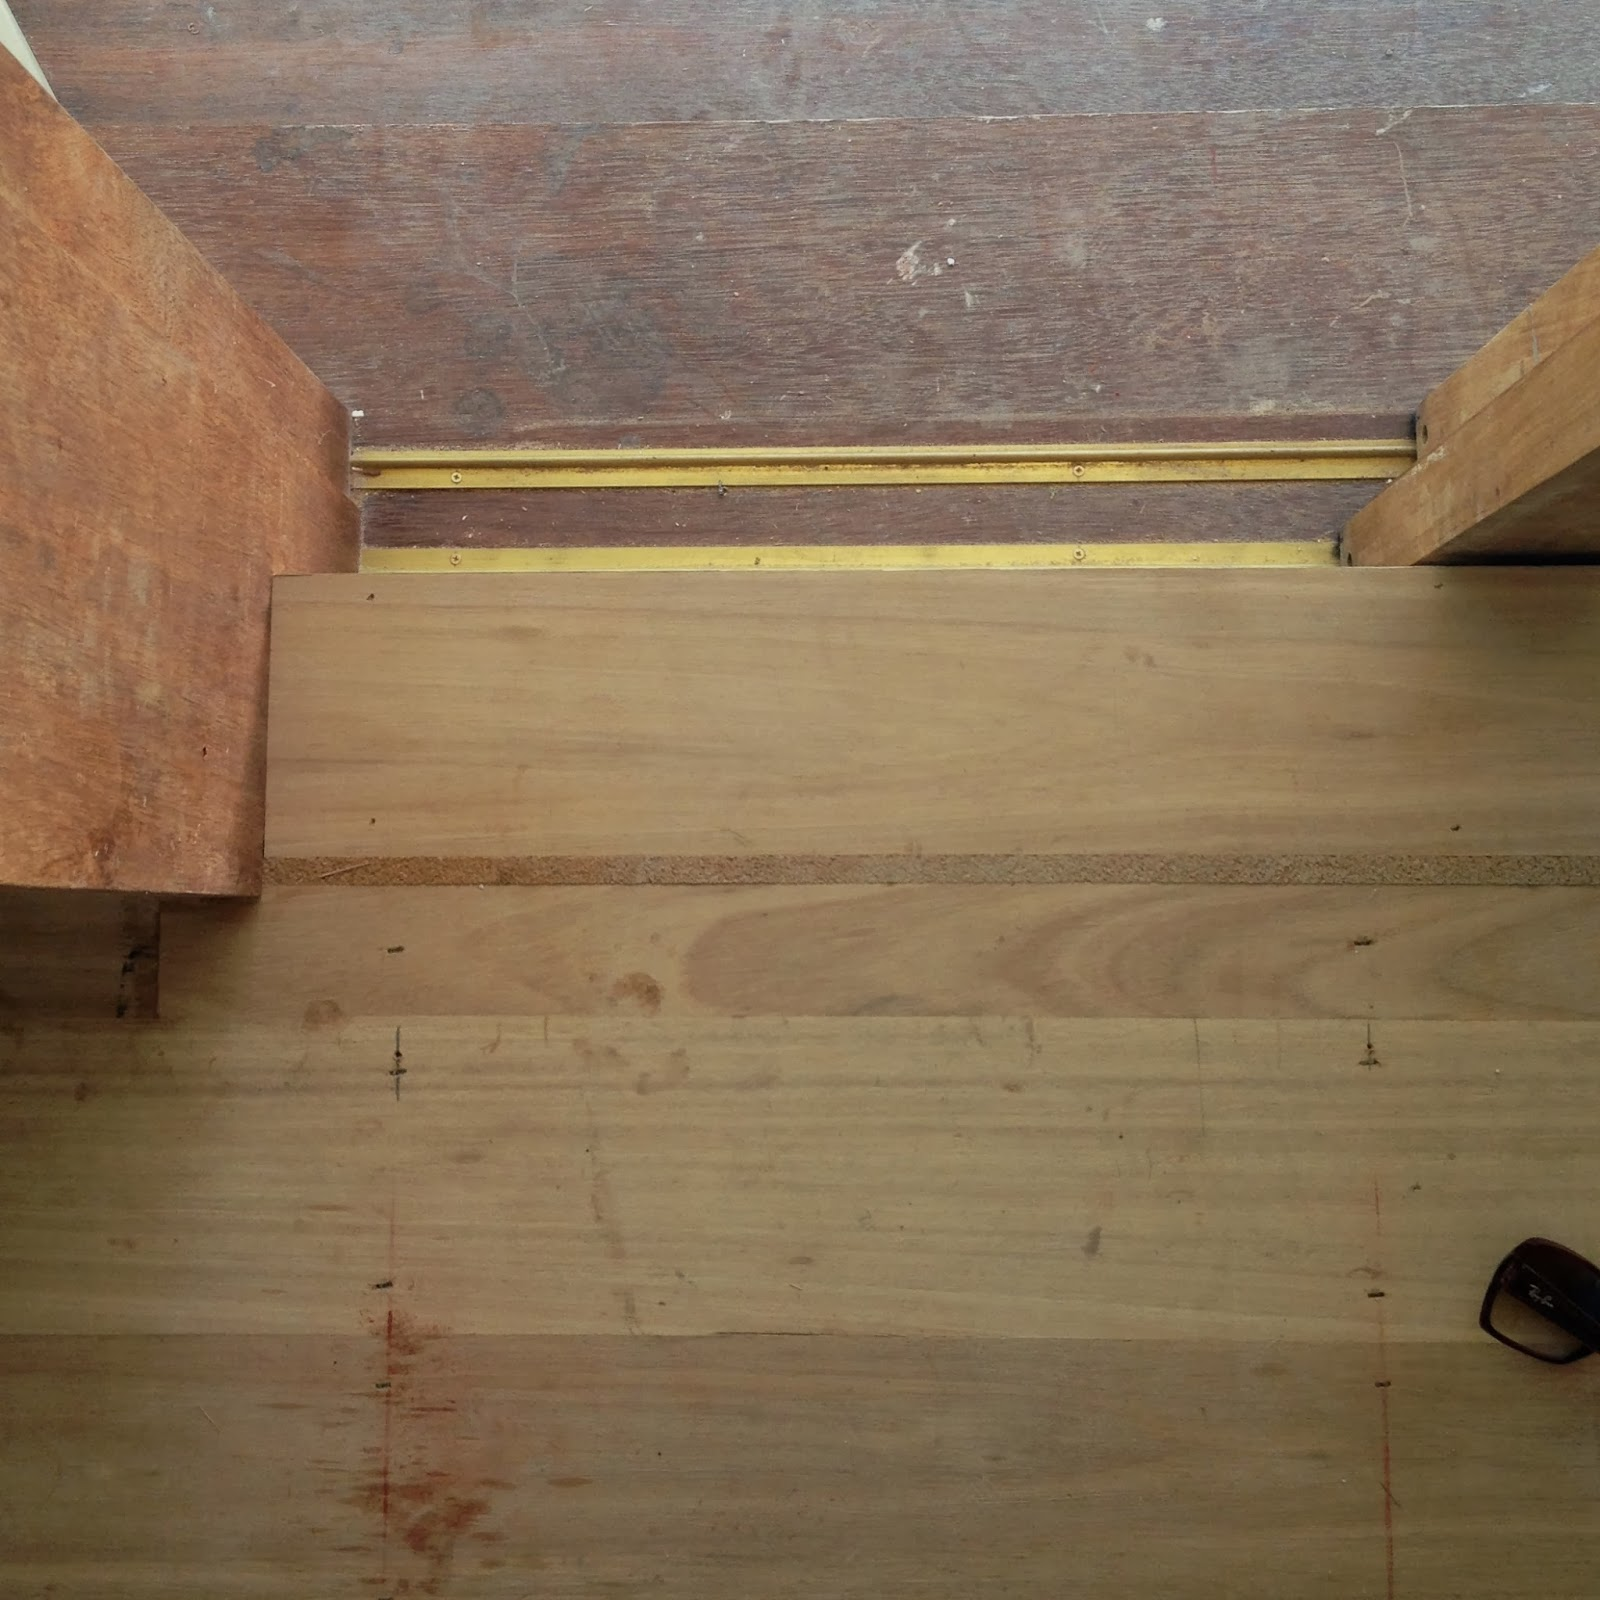 WEST END COTTAGE: Timber Floors and Expansion Joints